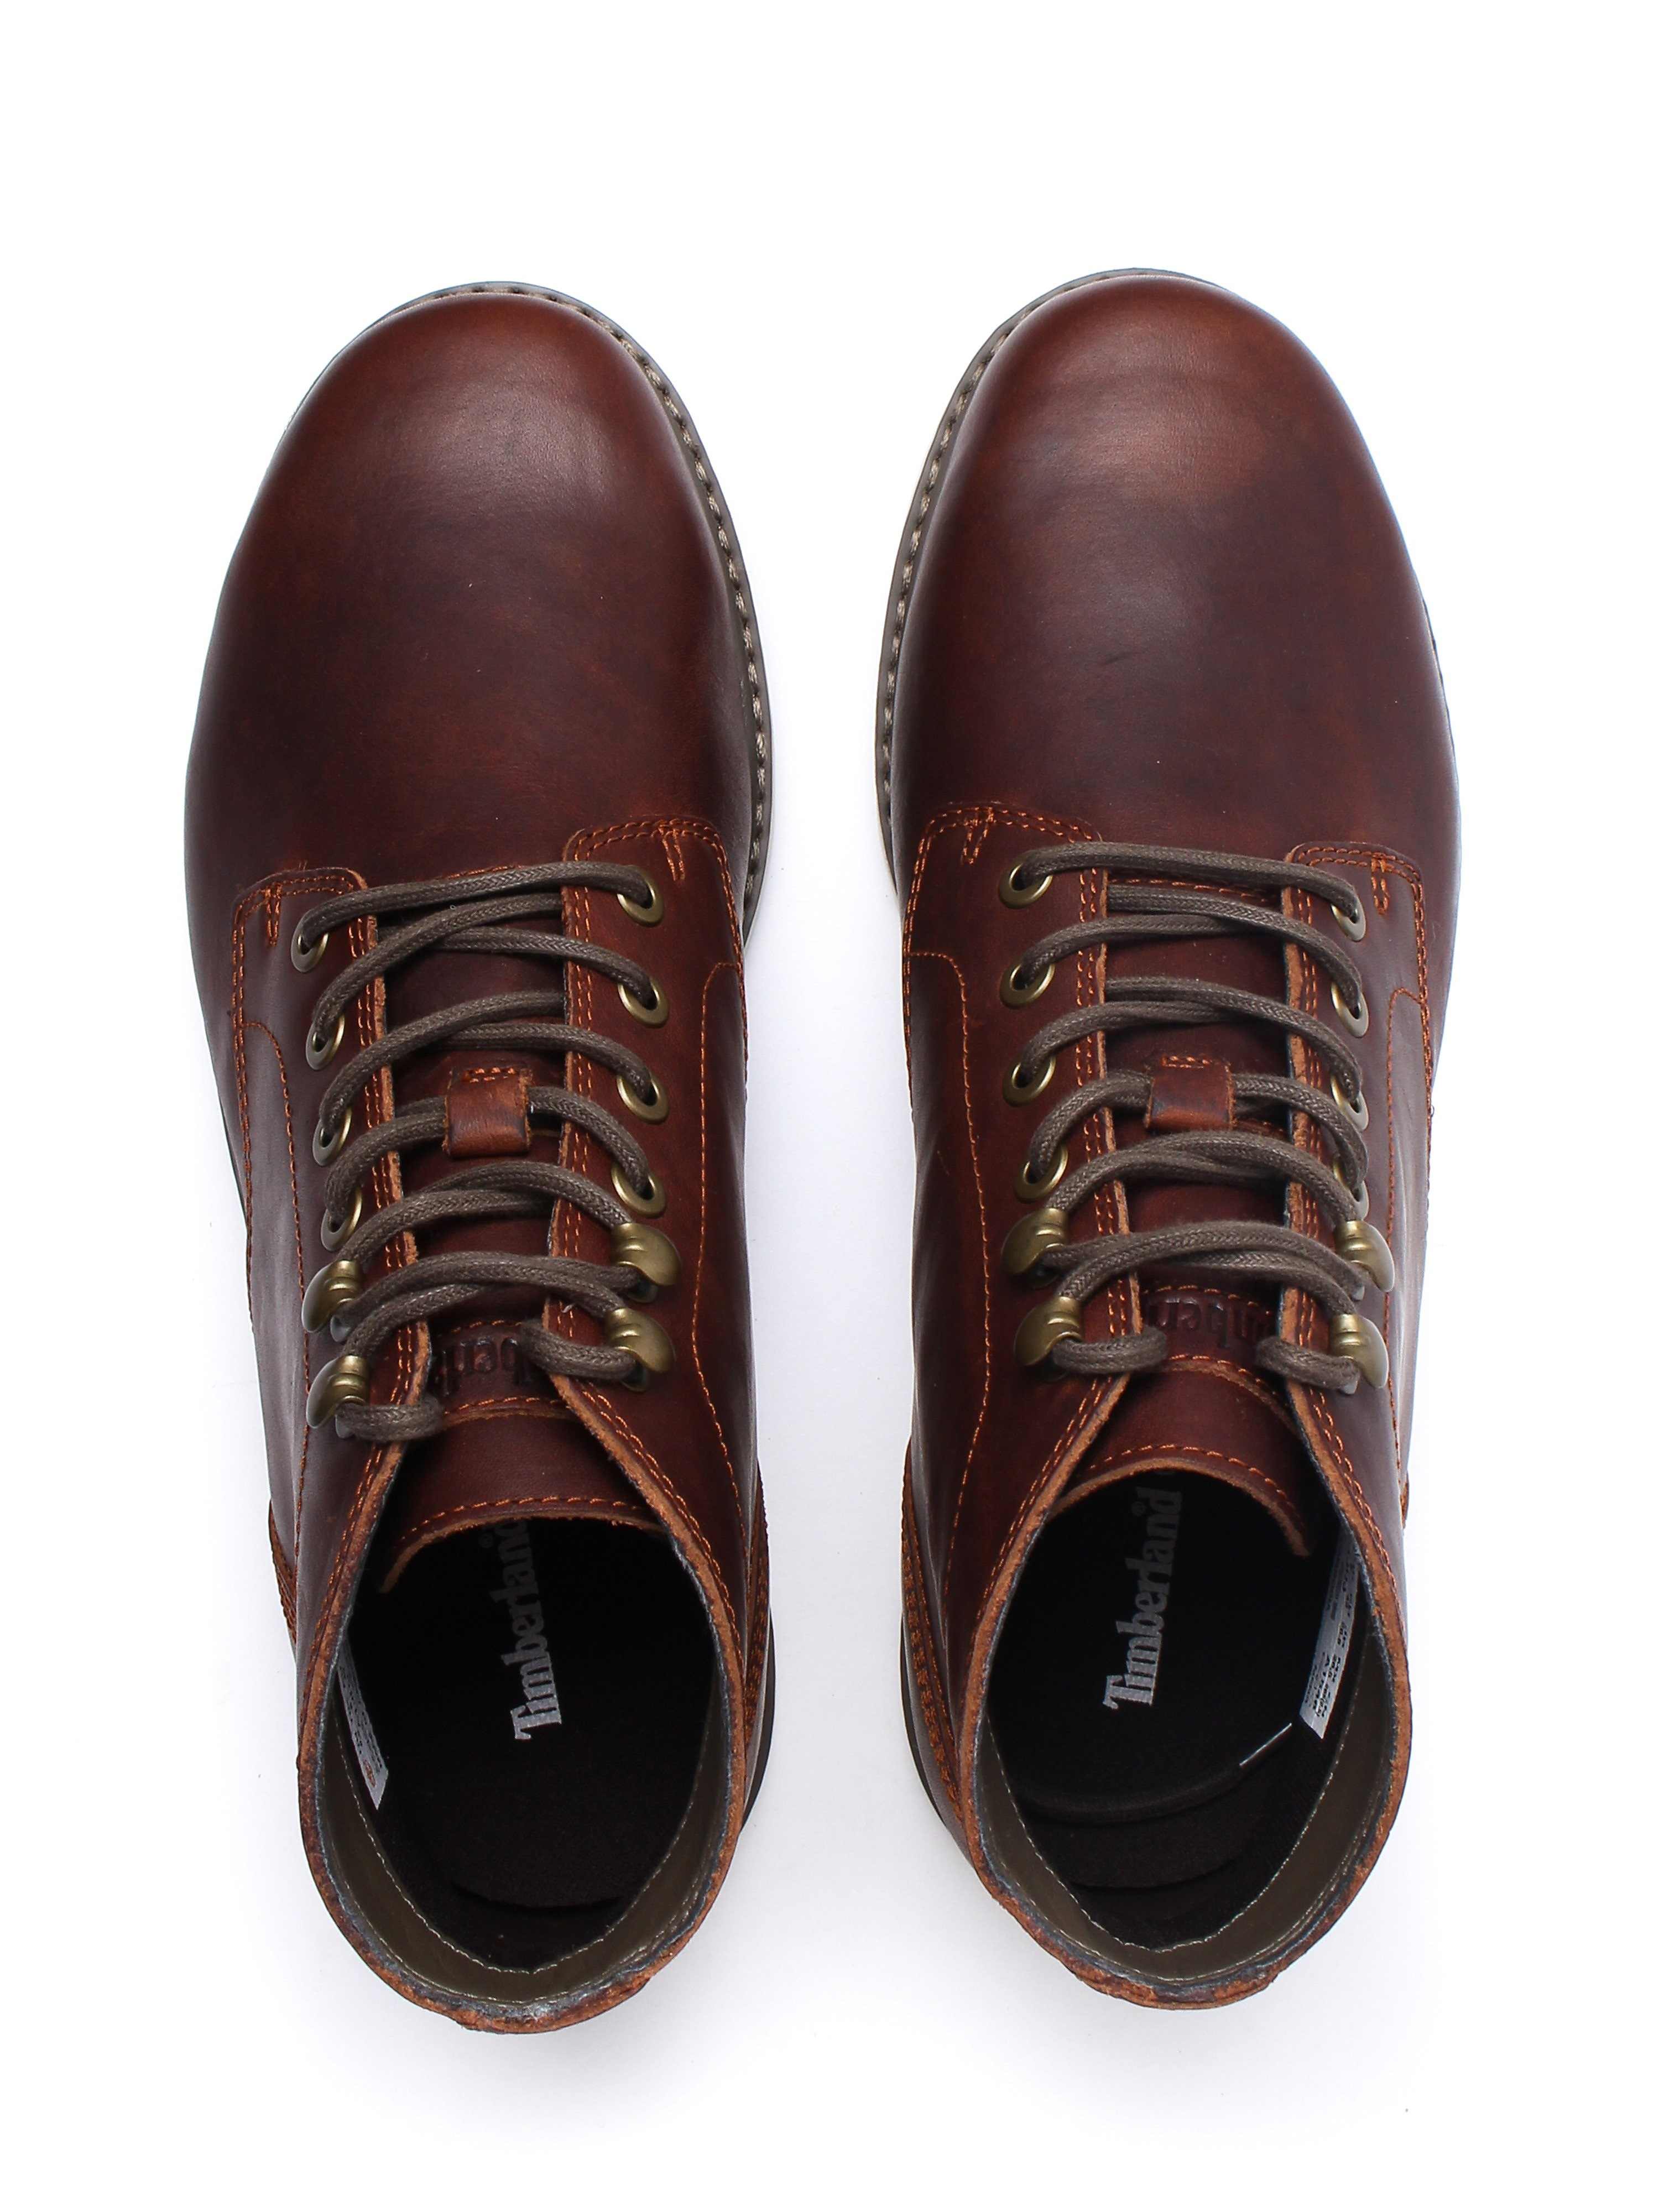 Timberland Men's Newmarket Chukka Boots - Rawhide Leather